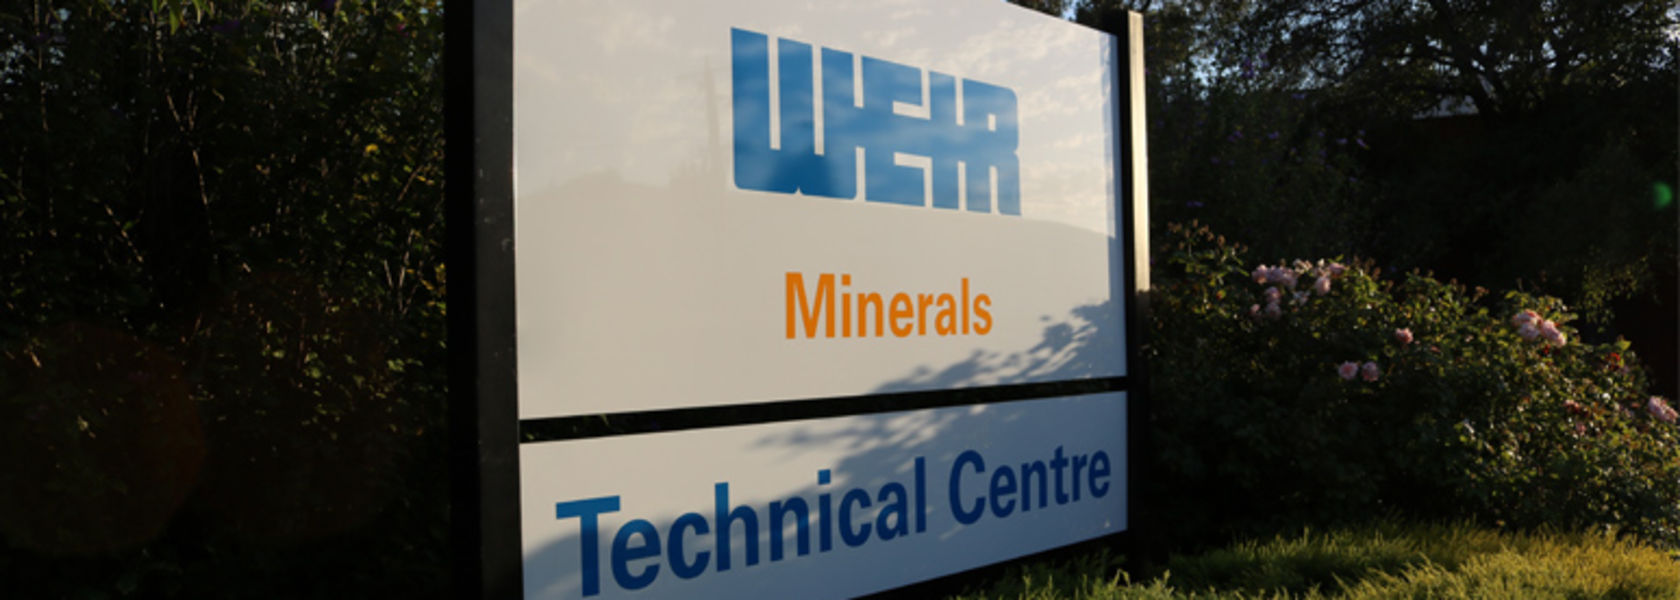 Weir Minerals opens technical centre